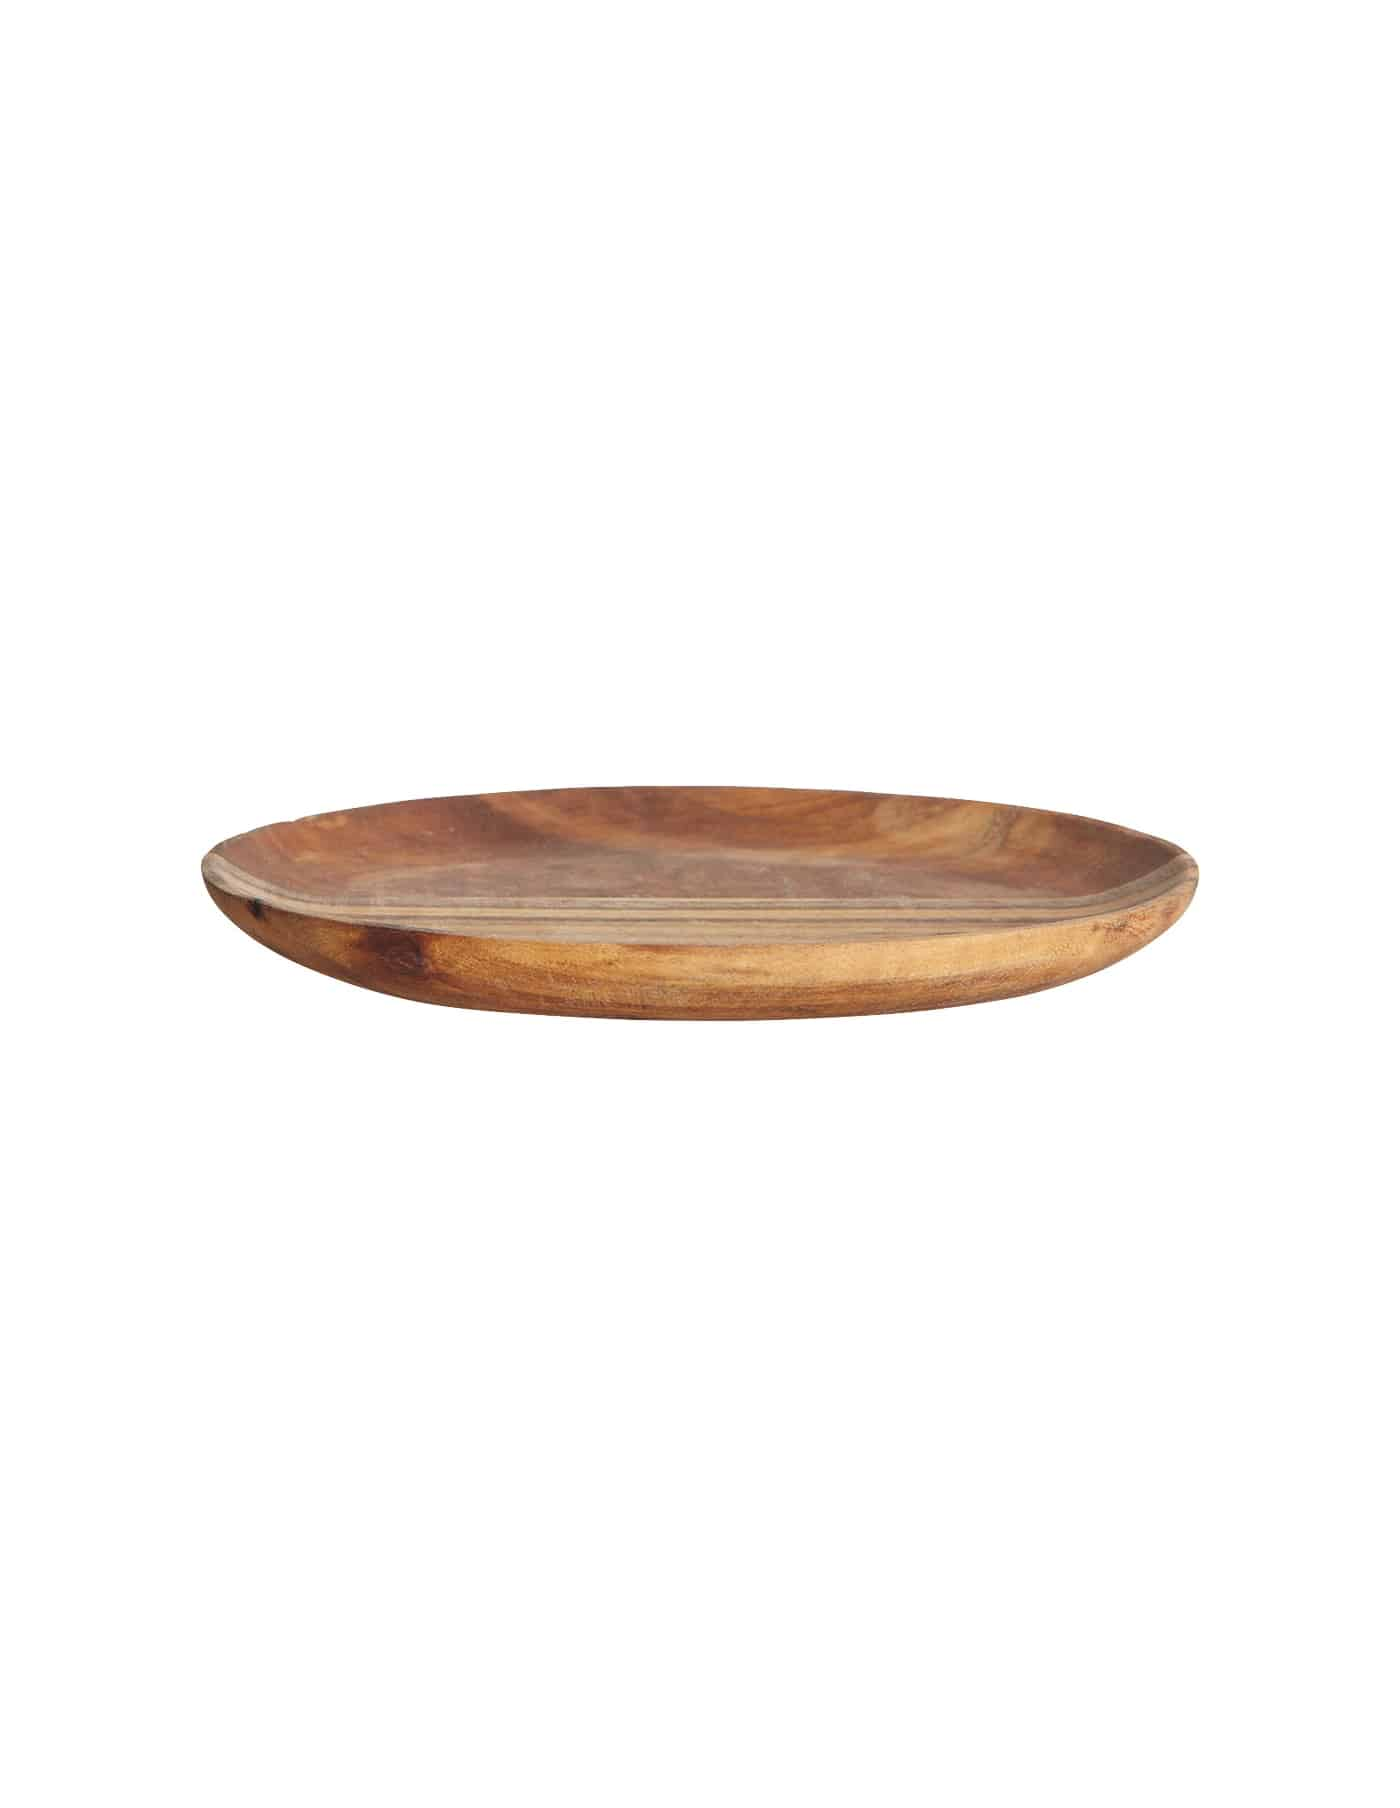 Acacia Wood Serving Plate, House Doctor